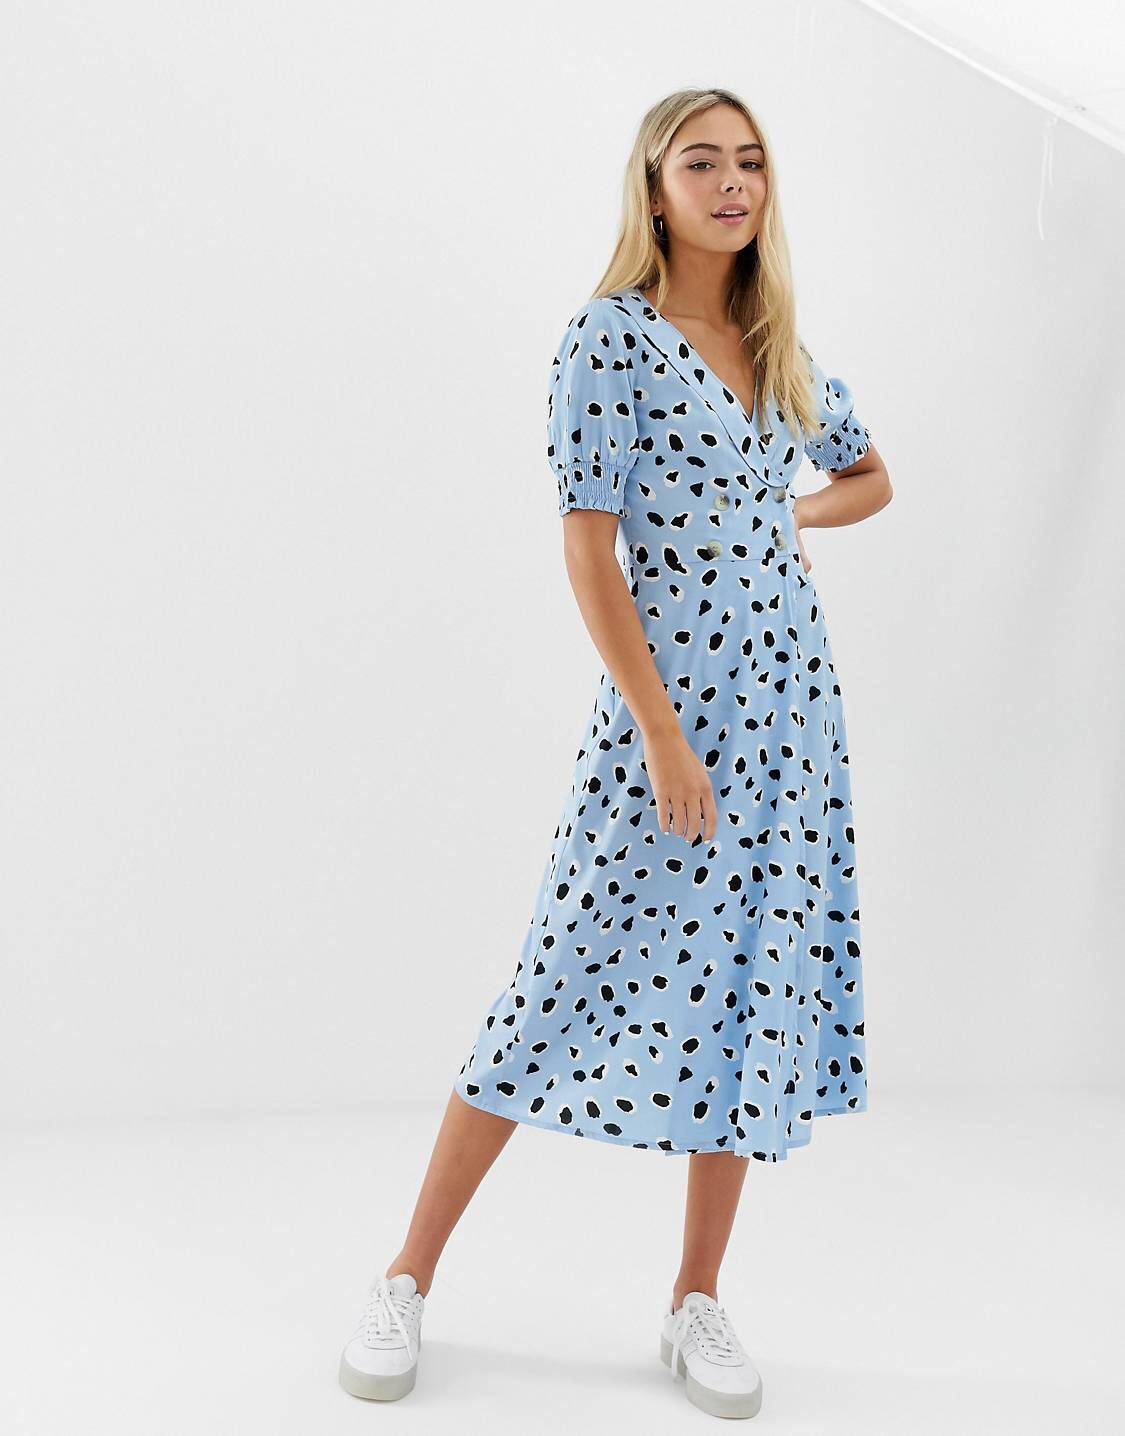 652232aa894f Wednesday's Girl midi dress with shirred sleeves in abstract spot ...